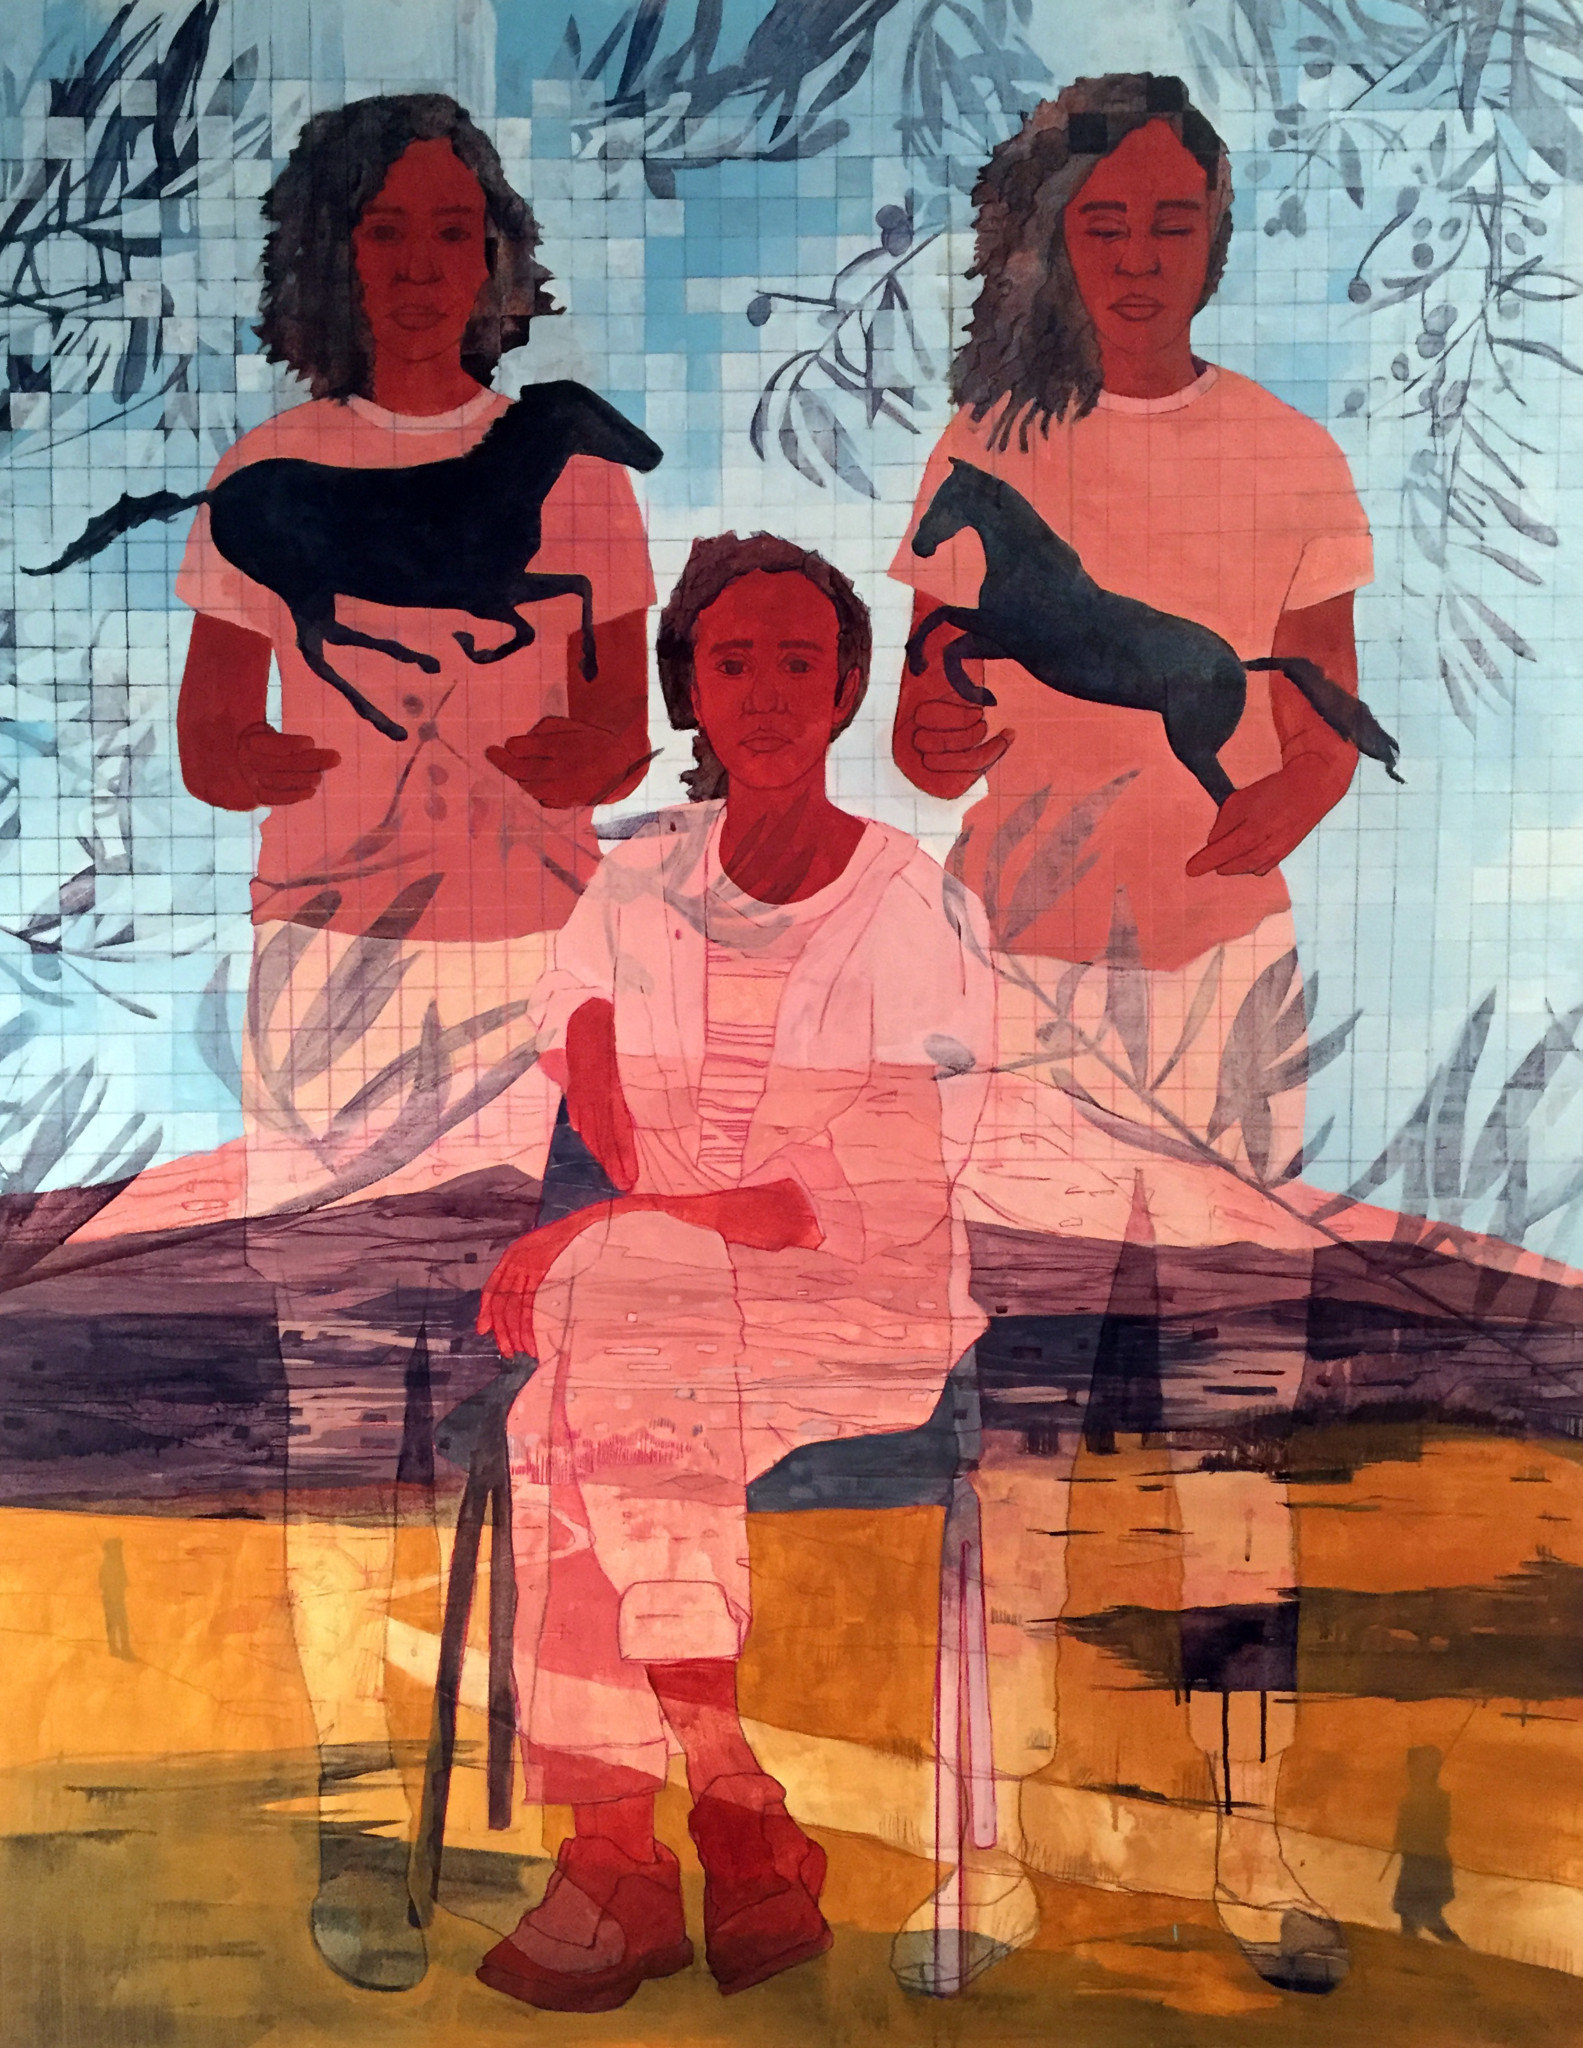 Pamela Phatsimo Sunstrum, Sister, 2018. One of the artist present at the 1-54 fair 2019 at London